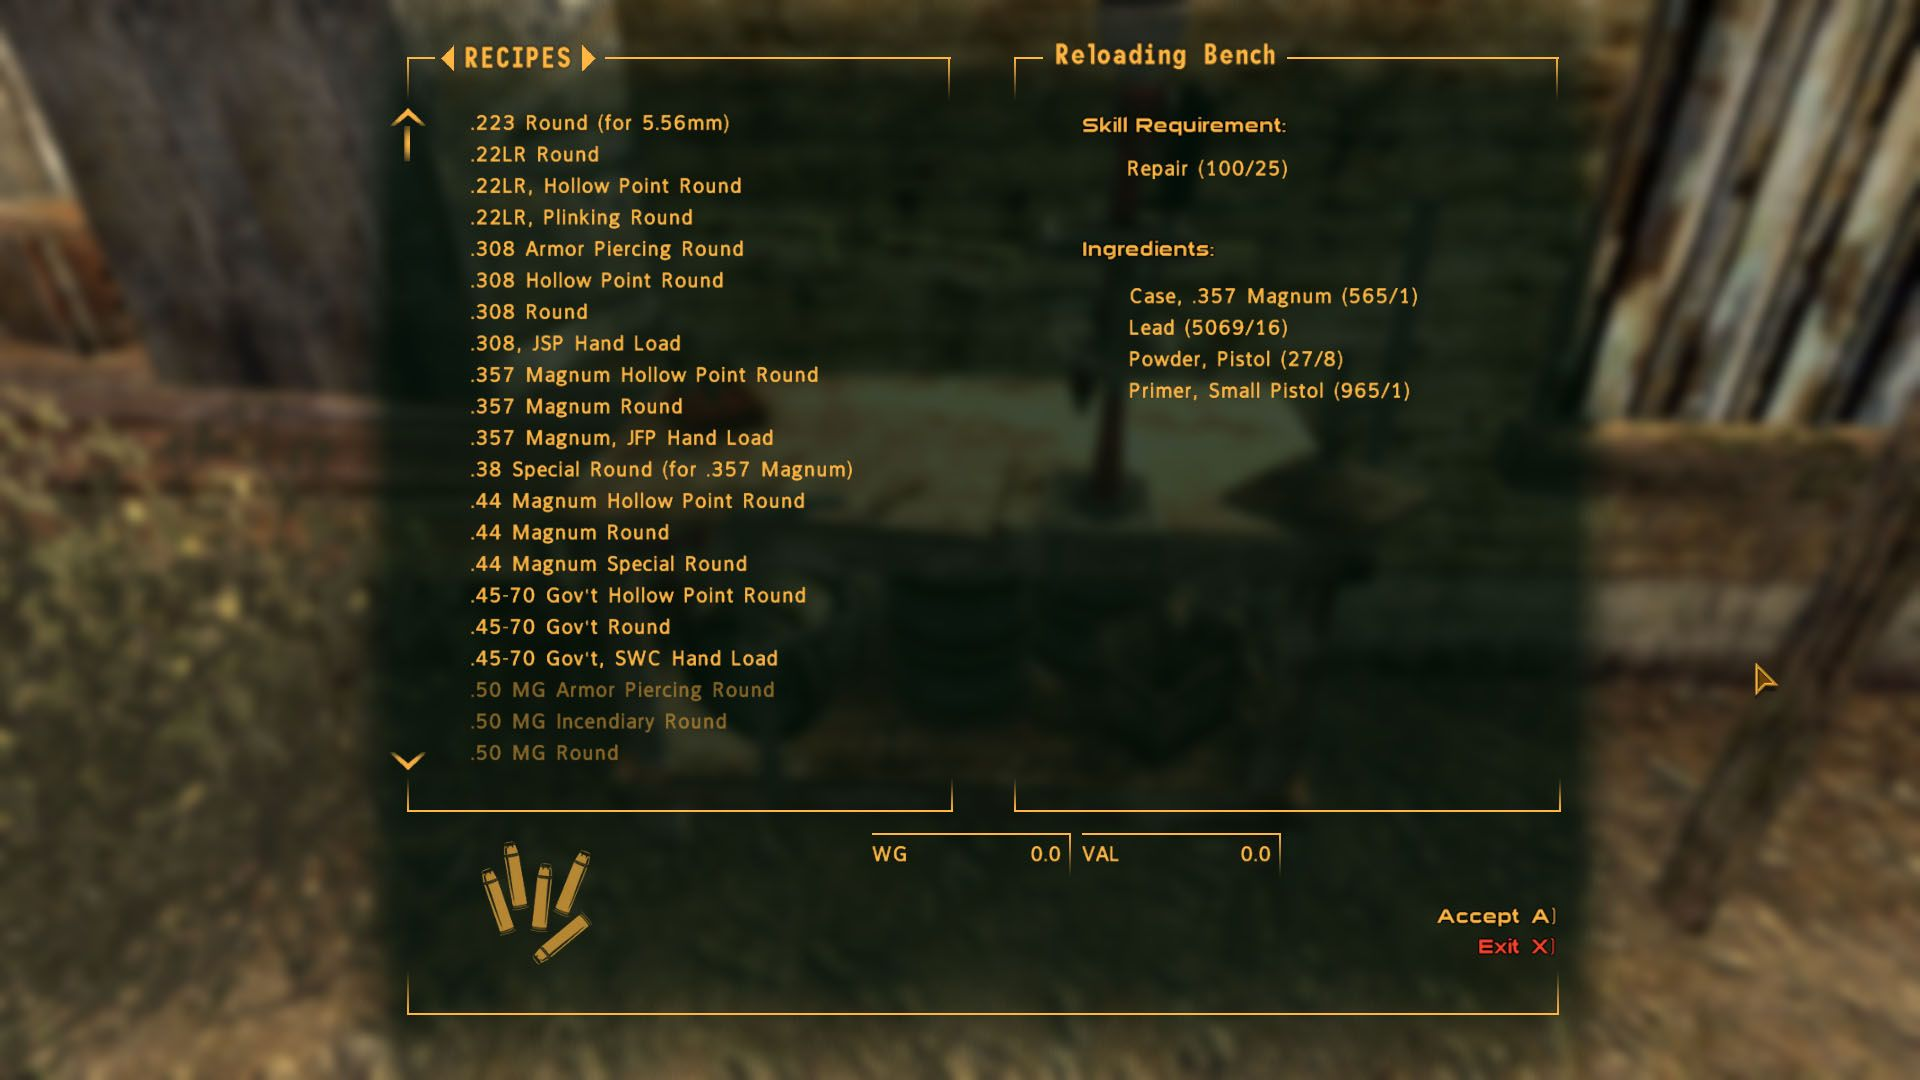 Missing Ammo Recipes At Fallout New Vegas Mods And Community Fallout New Vegas Recipes Reloading Bench